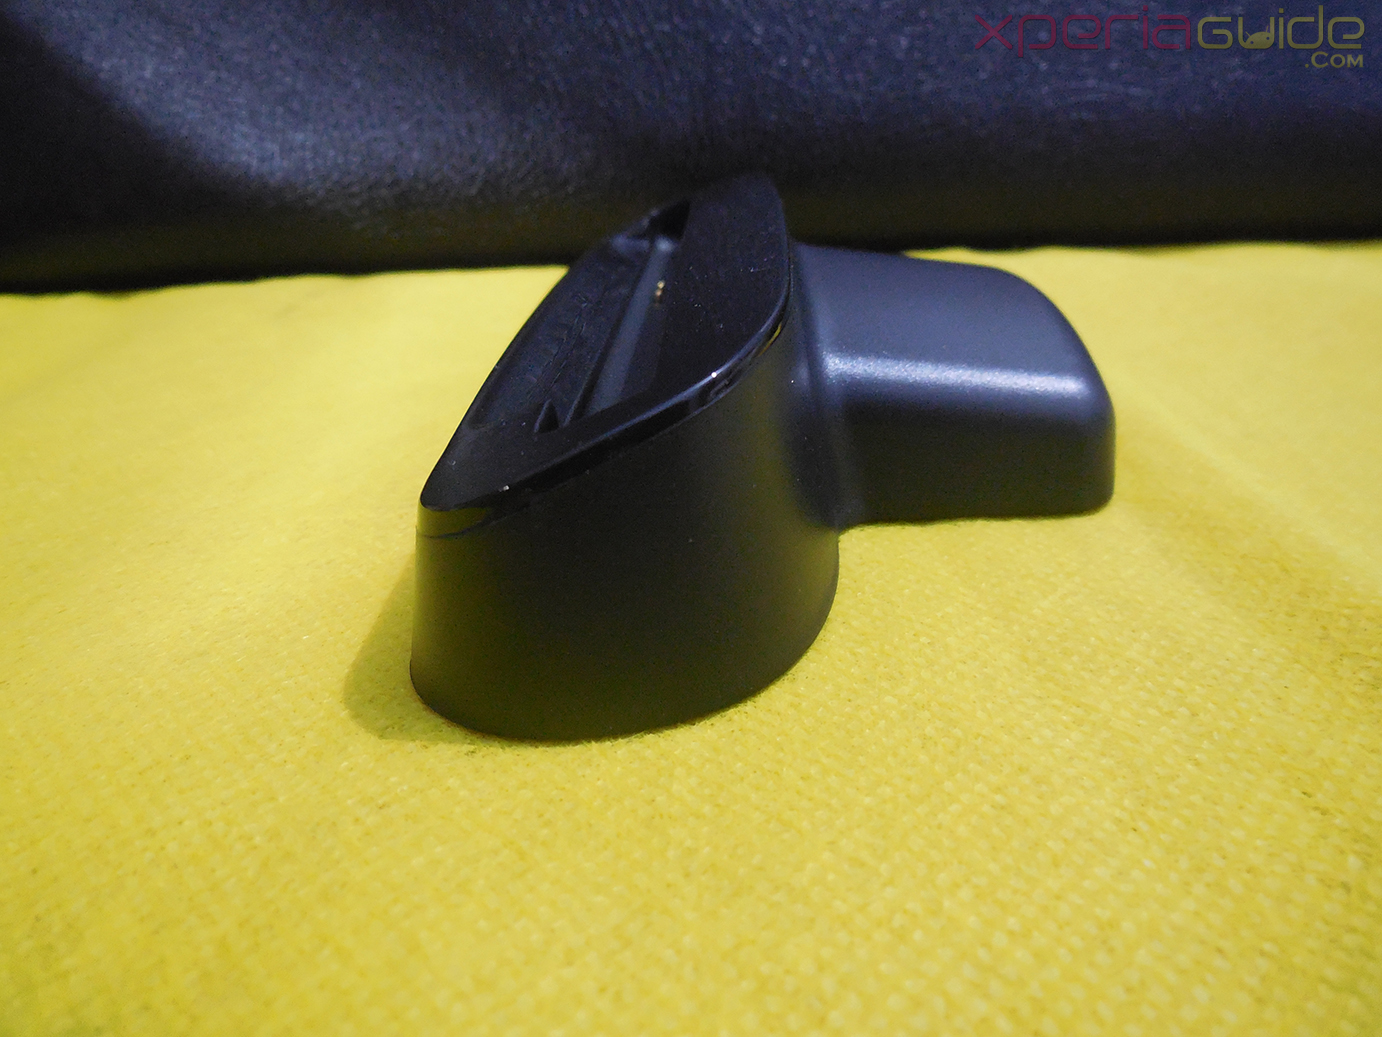 Side view of Goose White Xperia Z Charging Dock